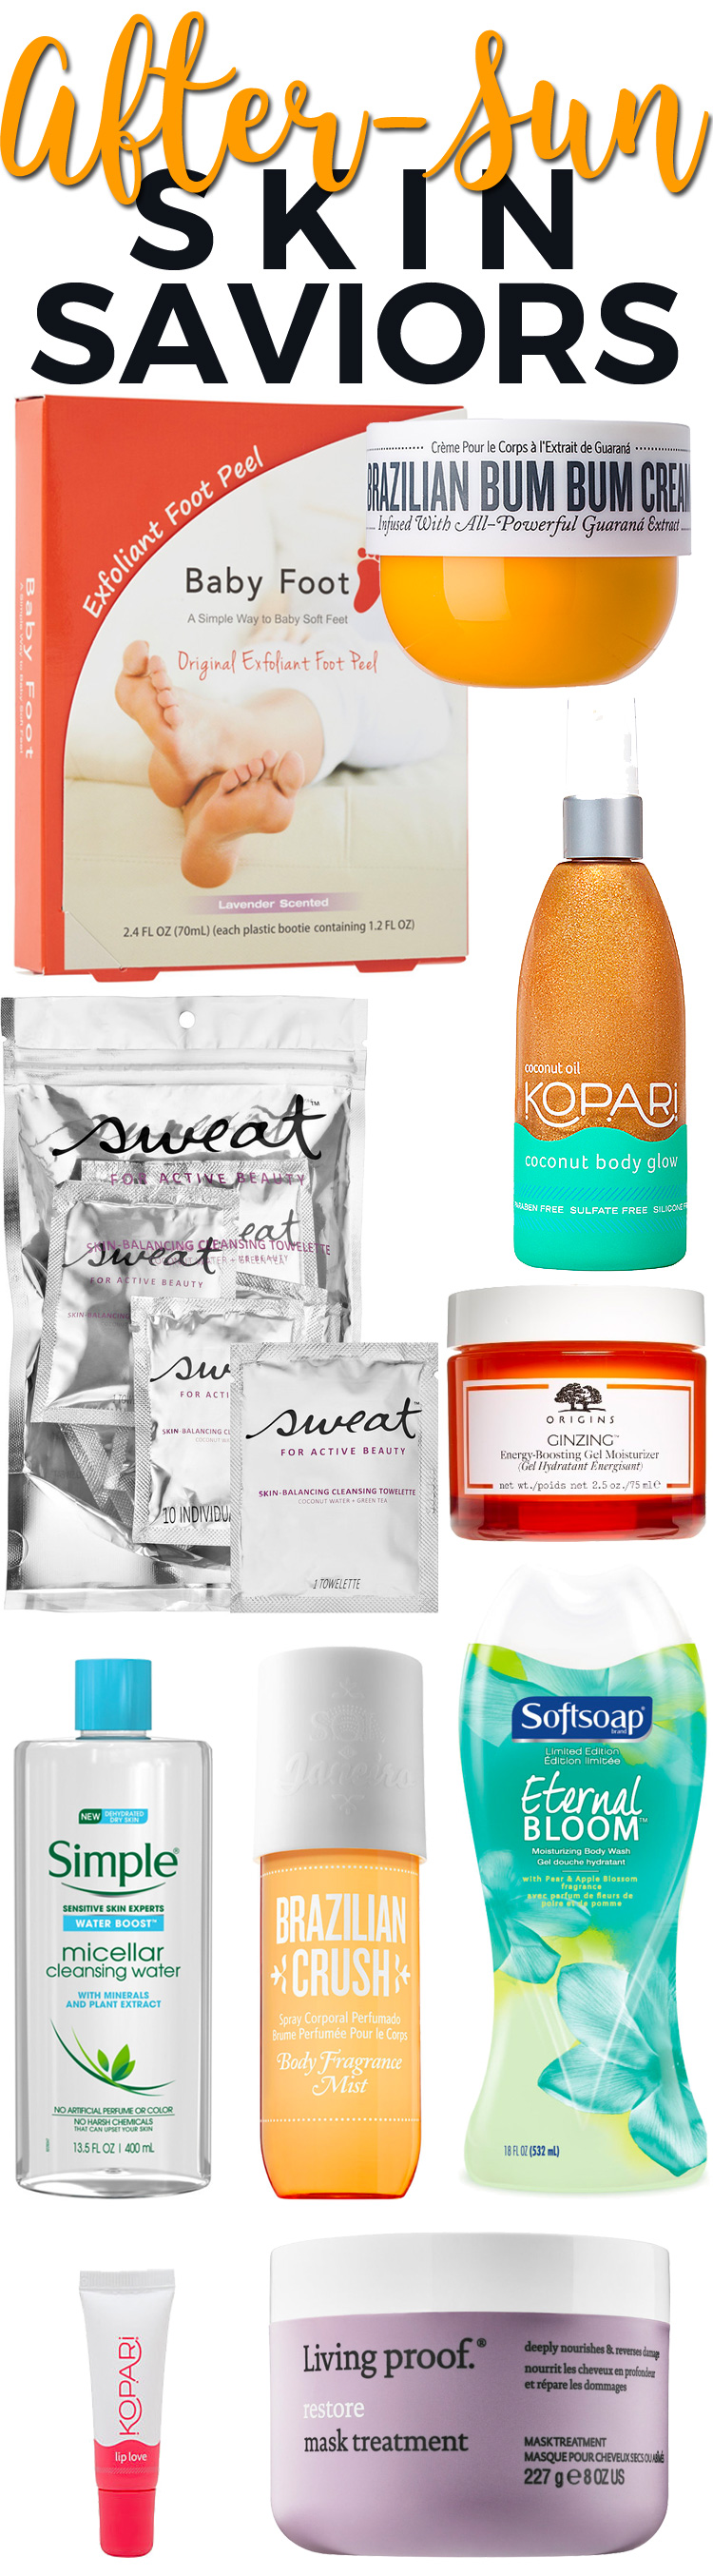 Top 10 After-Sun Skin Saviors